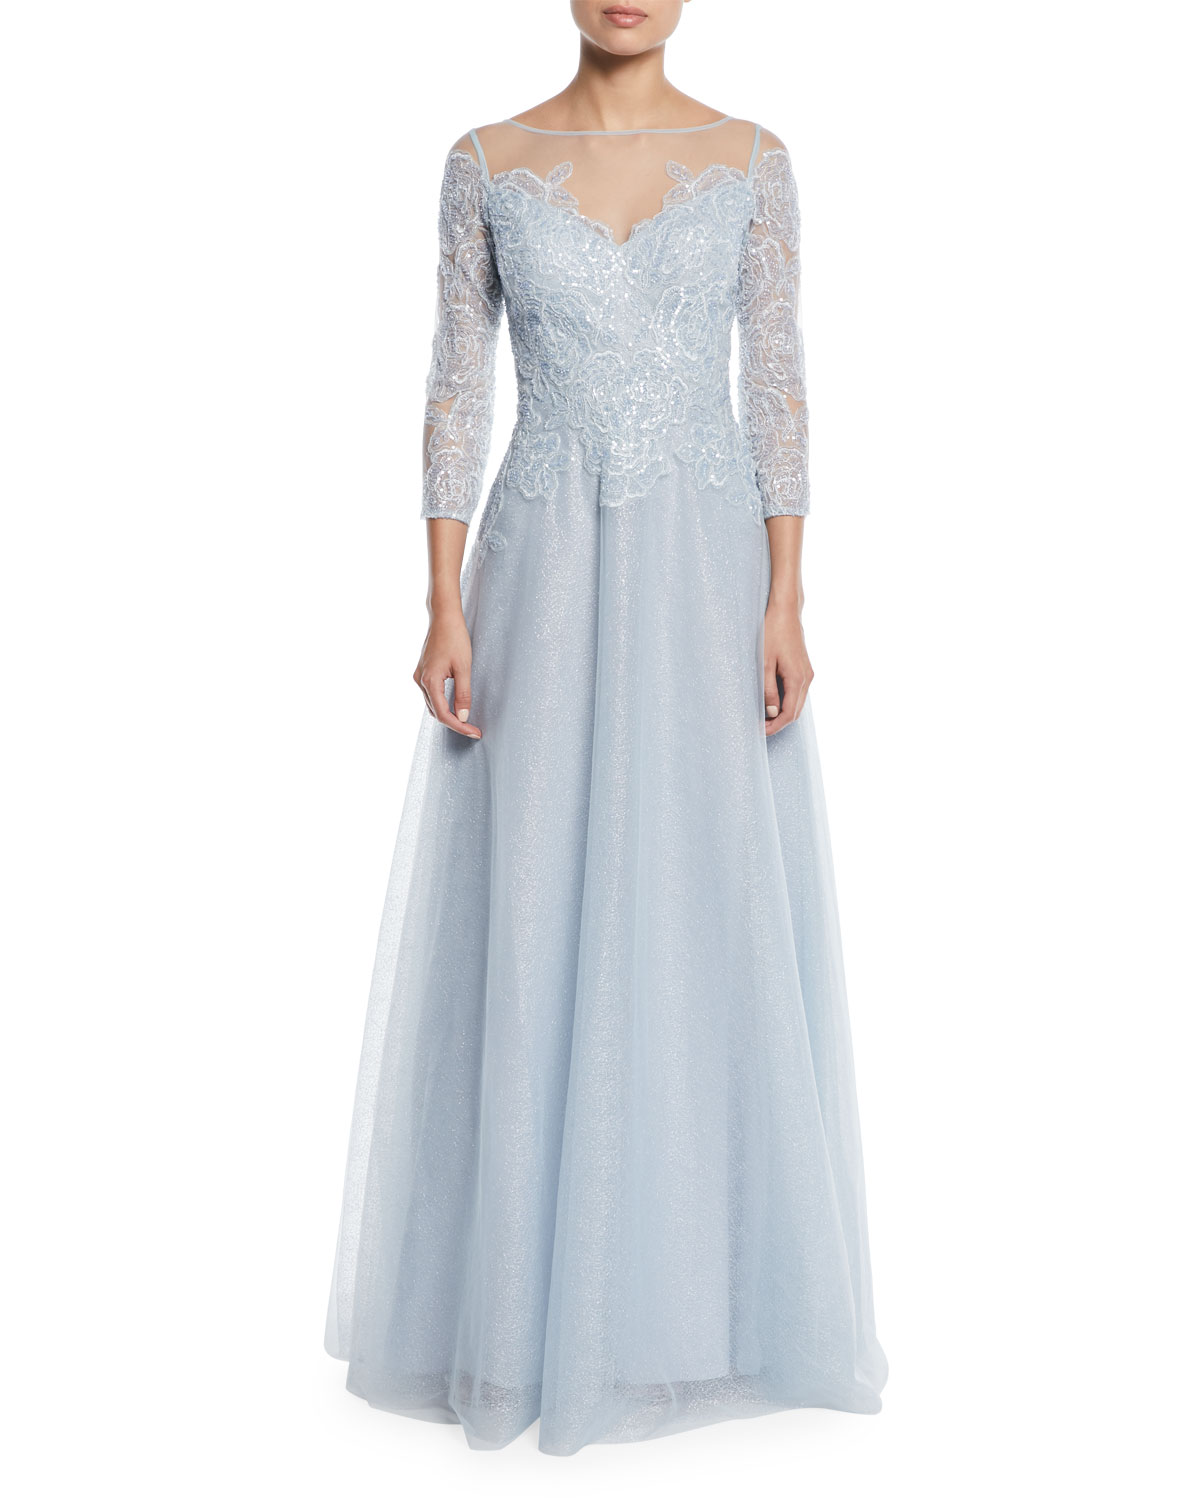 Rickie Freeman for Teri Jon Lace & Tulle Fairy Tale Ball Gown ...